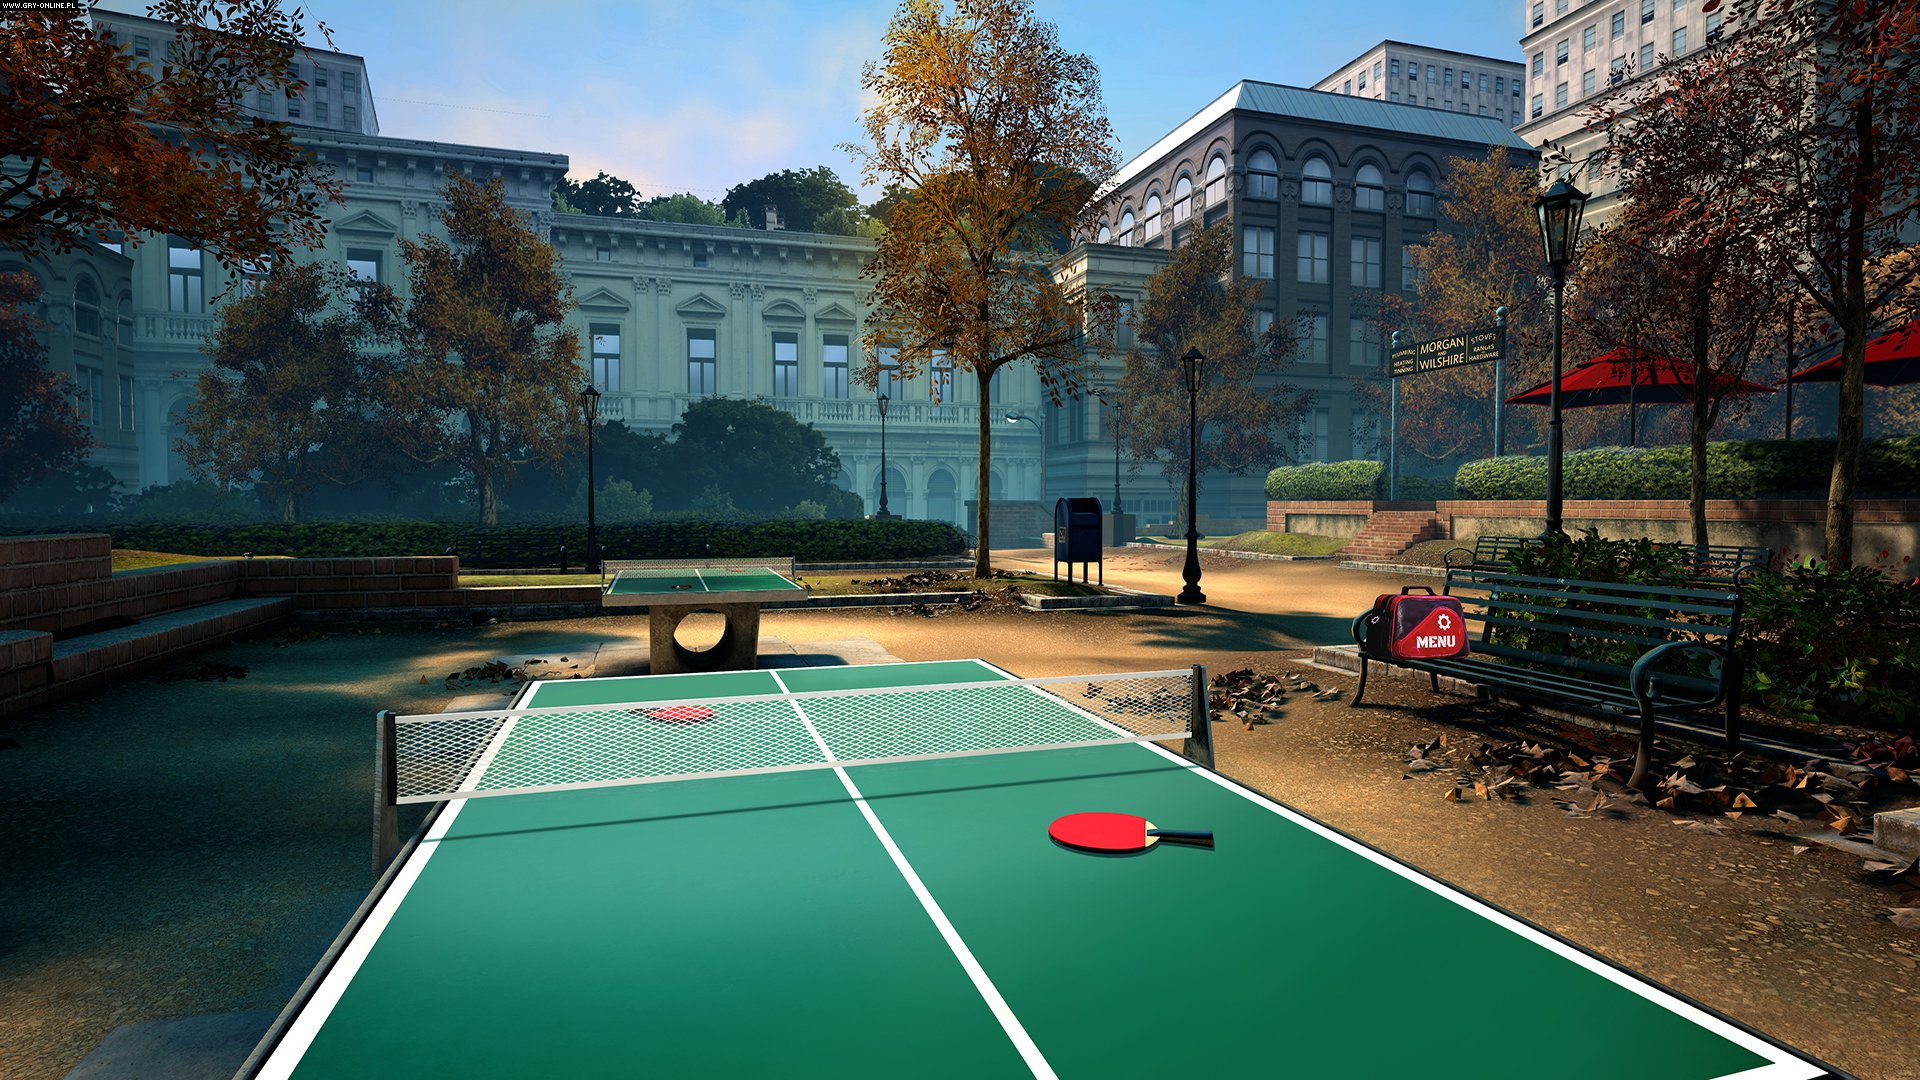 VR Ping Pong Pro PS4, PC Gry Screen 3/10, Reddoll Srl, Merge Games